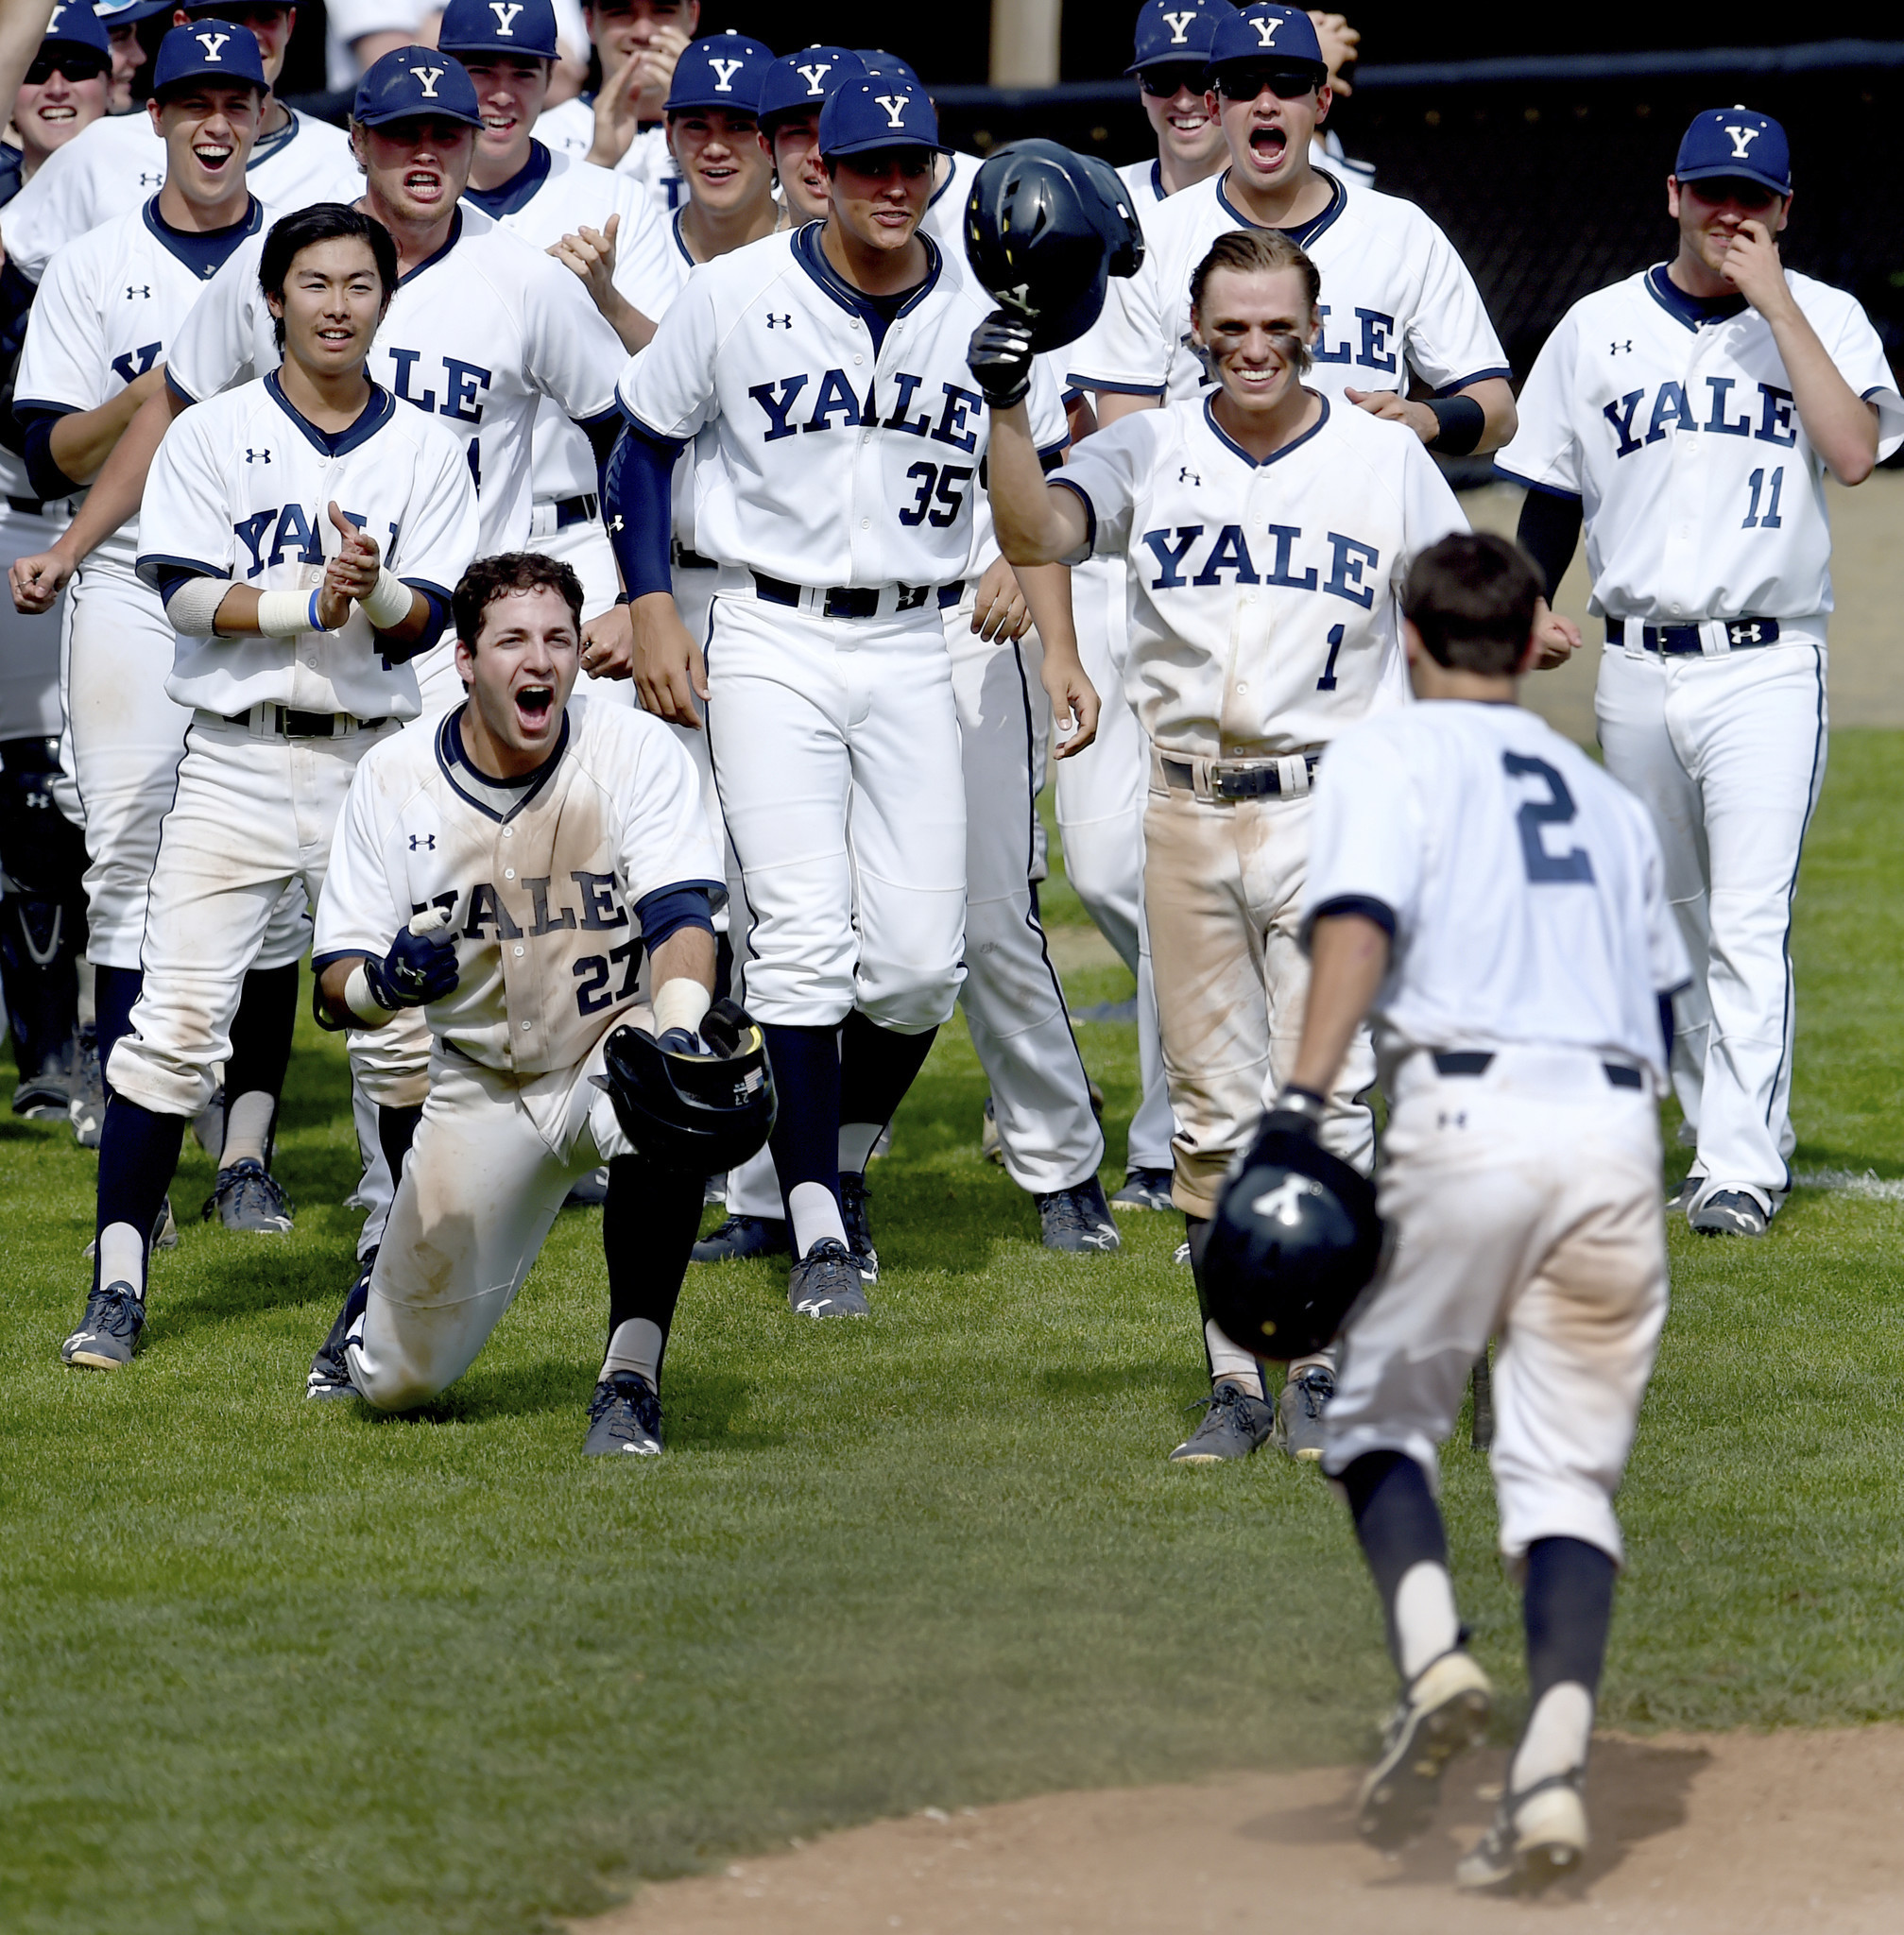 uconn baseball denied ncaa bid  yale  ccsu earn automatic